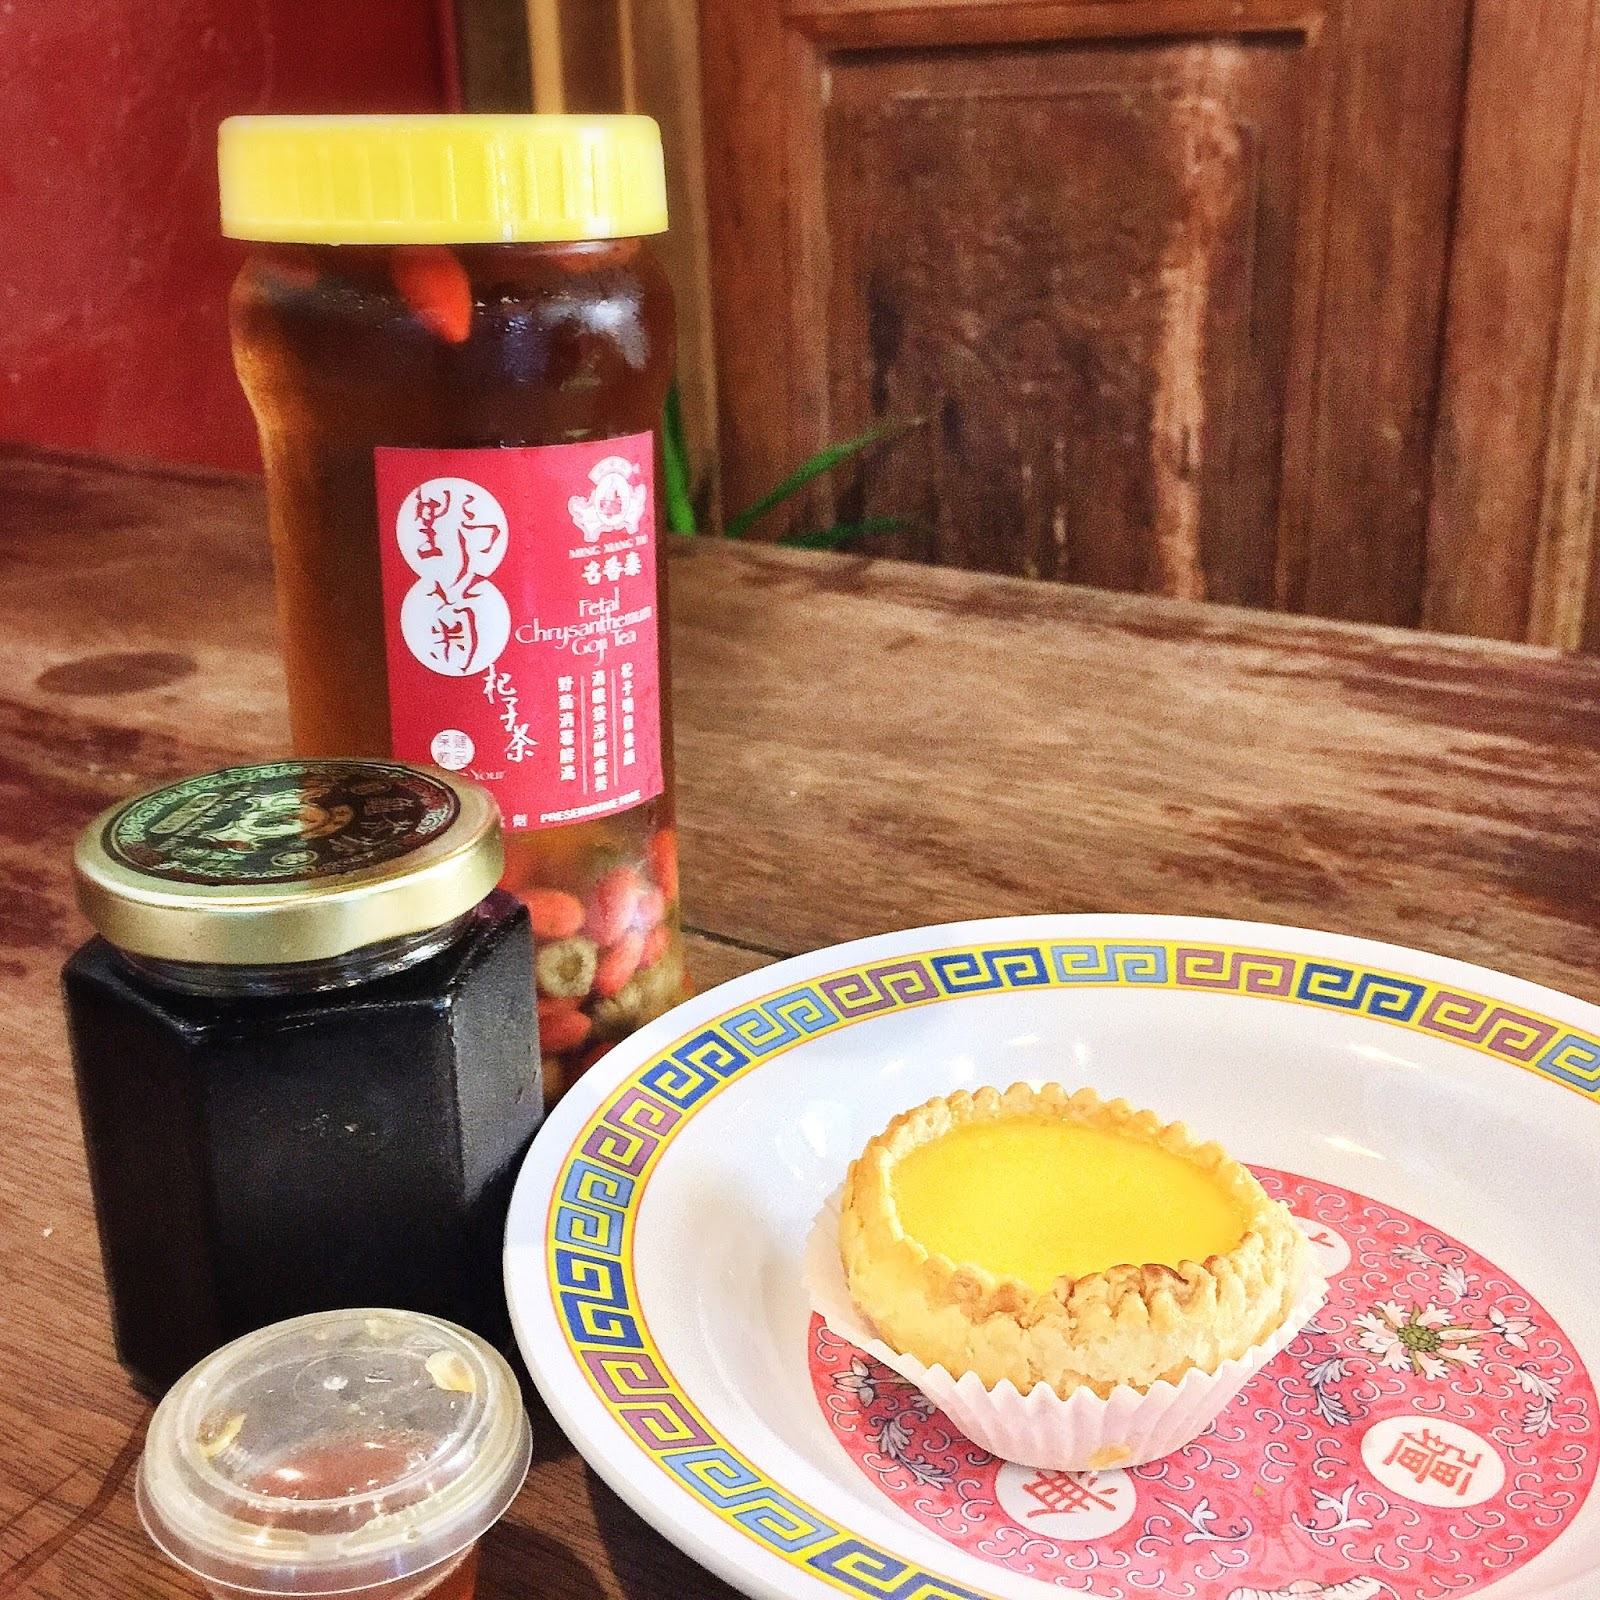 Ming Xiang Tai Pastry Shop - Trishaw Egg Tart, Fetal Chrysanthemum Goji Tea, Luo Han Guo Herbal Jelly